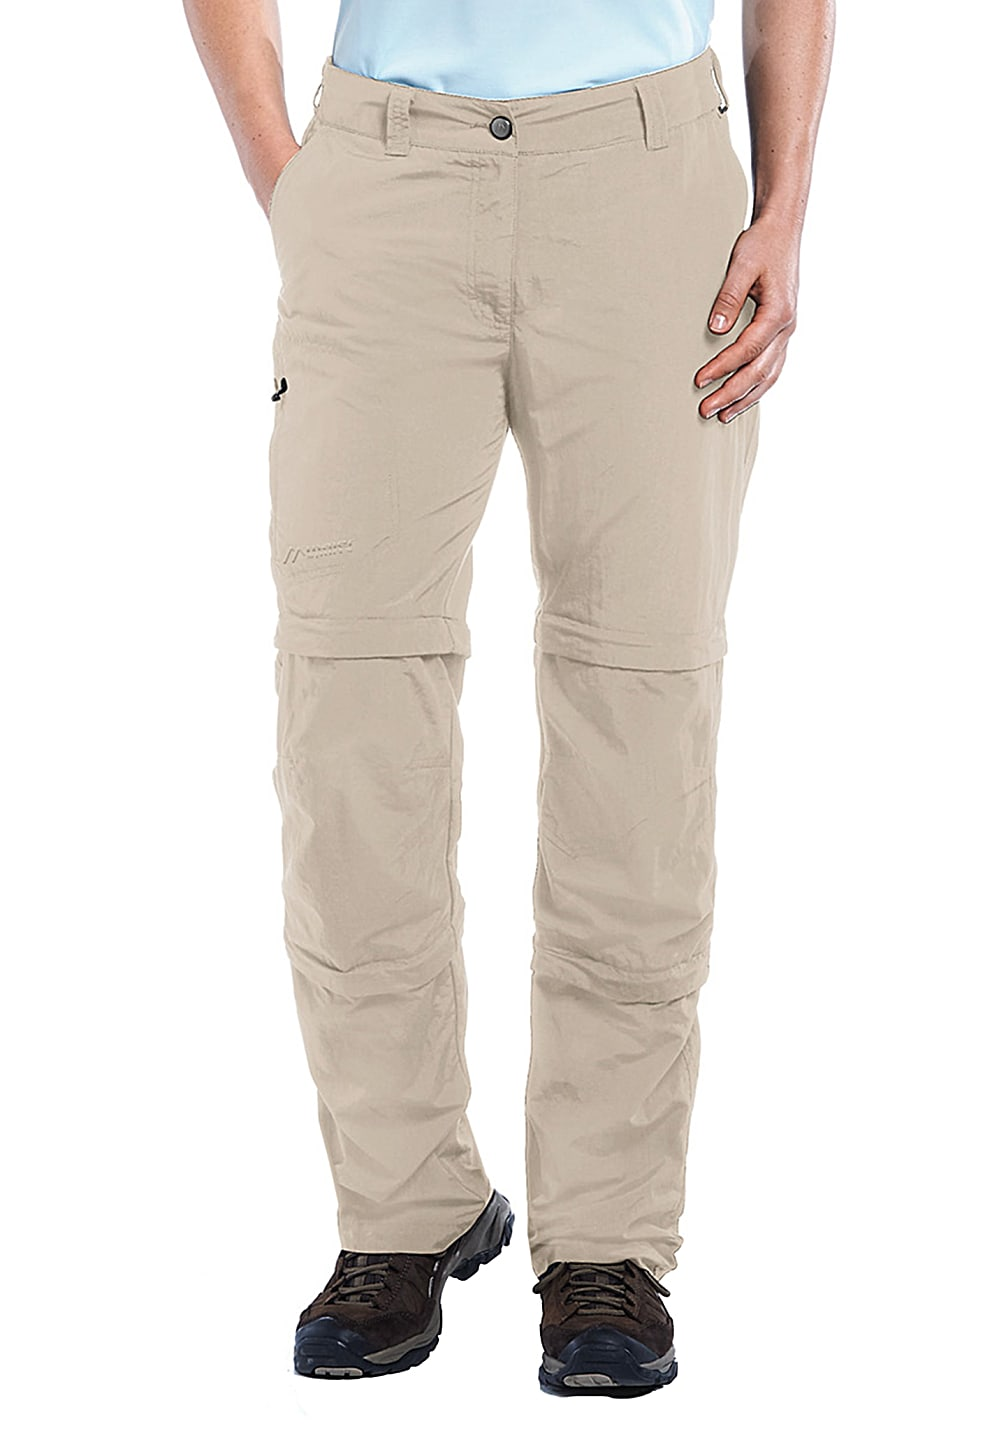 Maier Sports Yesa - Outdoorhose für Damen - Beige